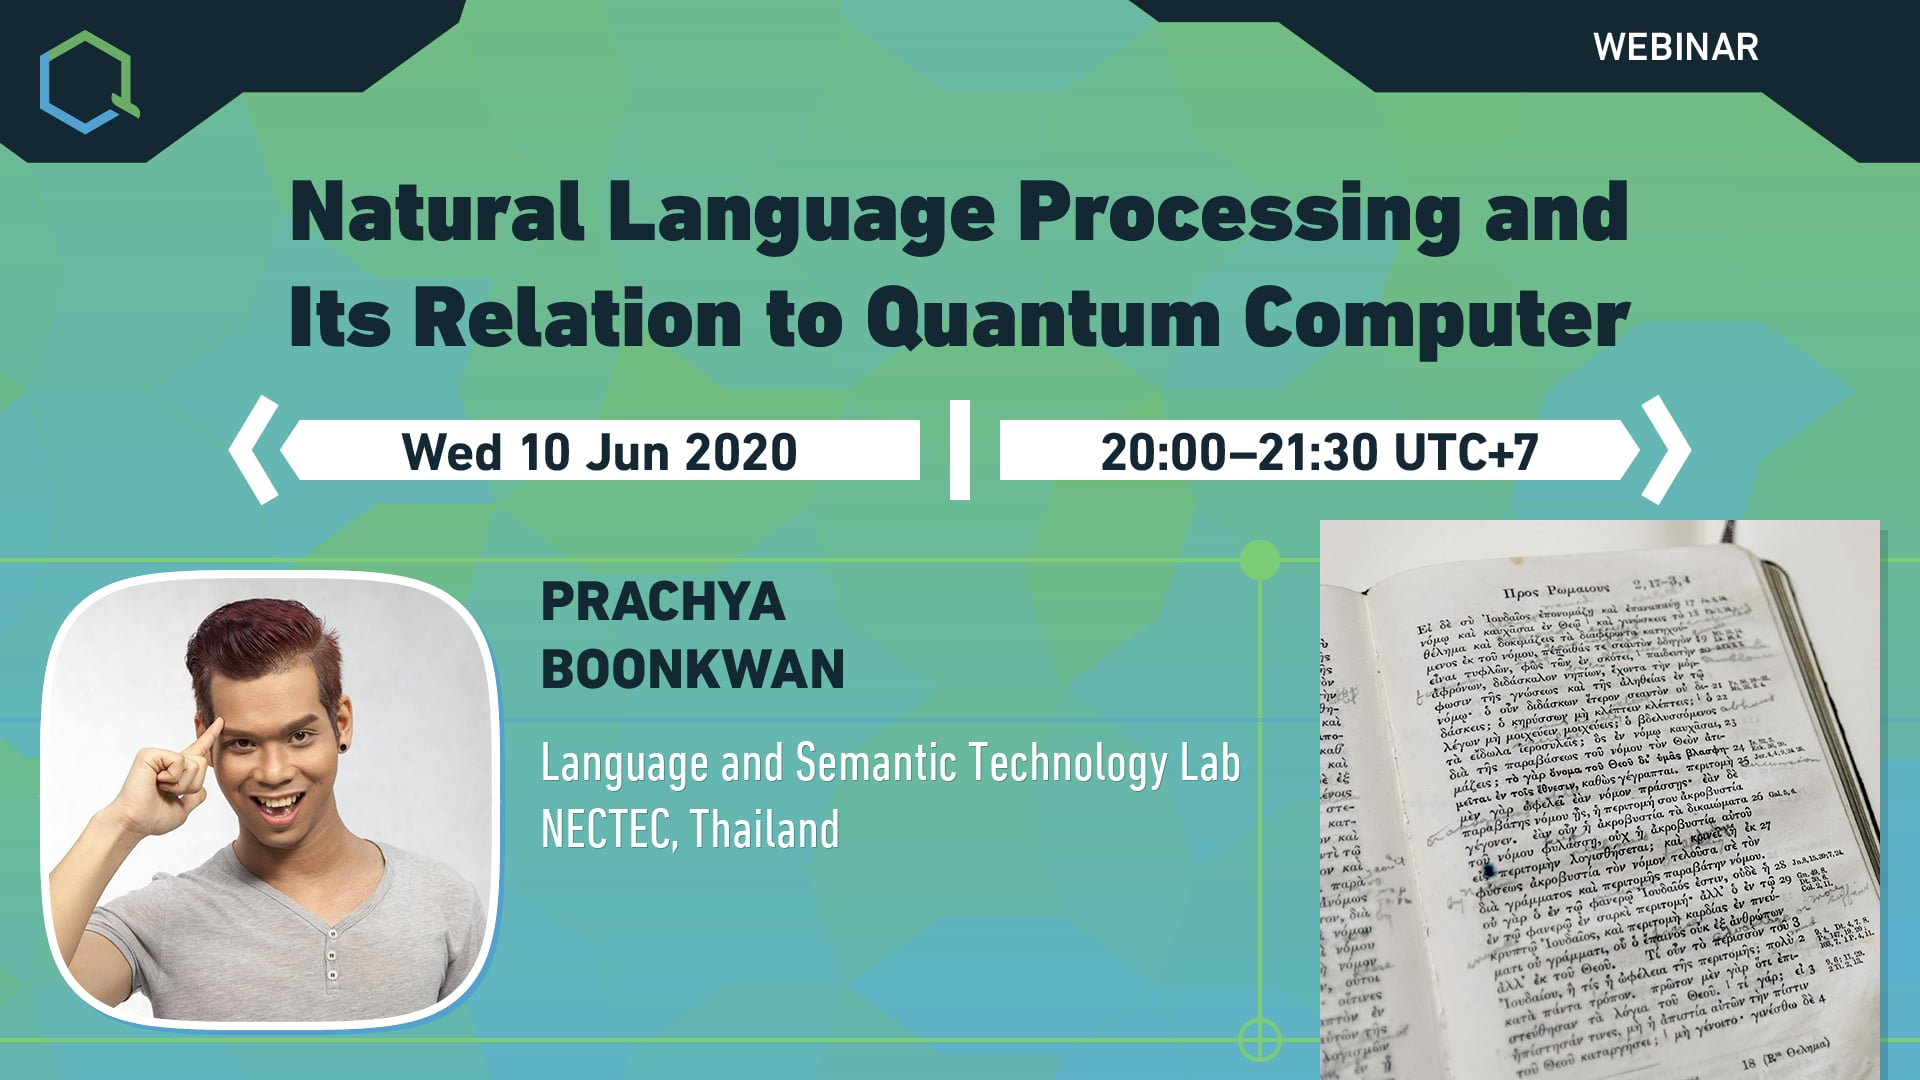 Natural Language Processing and Its Relation to Quantum Computer